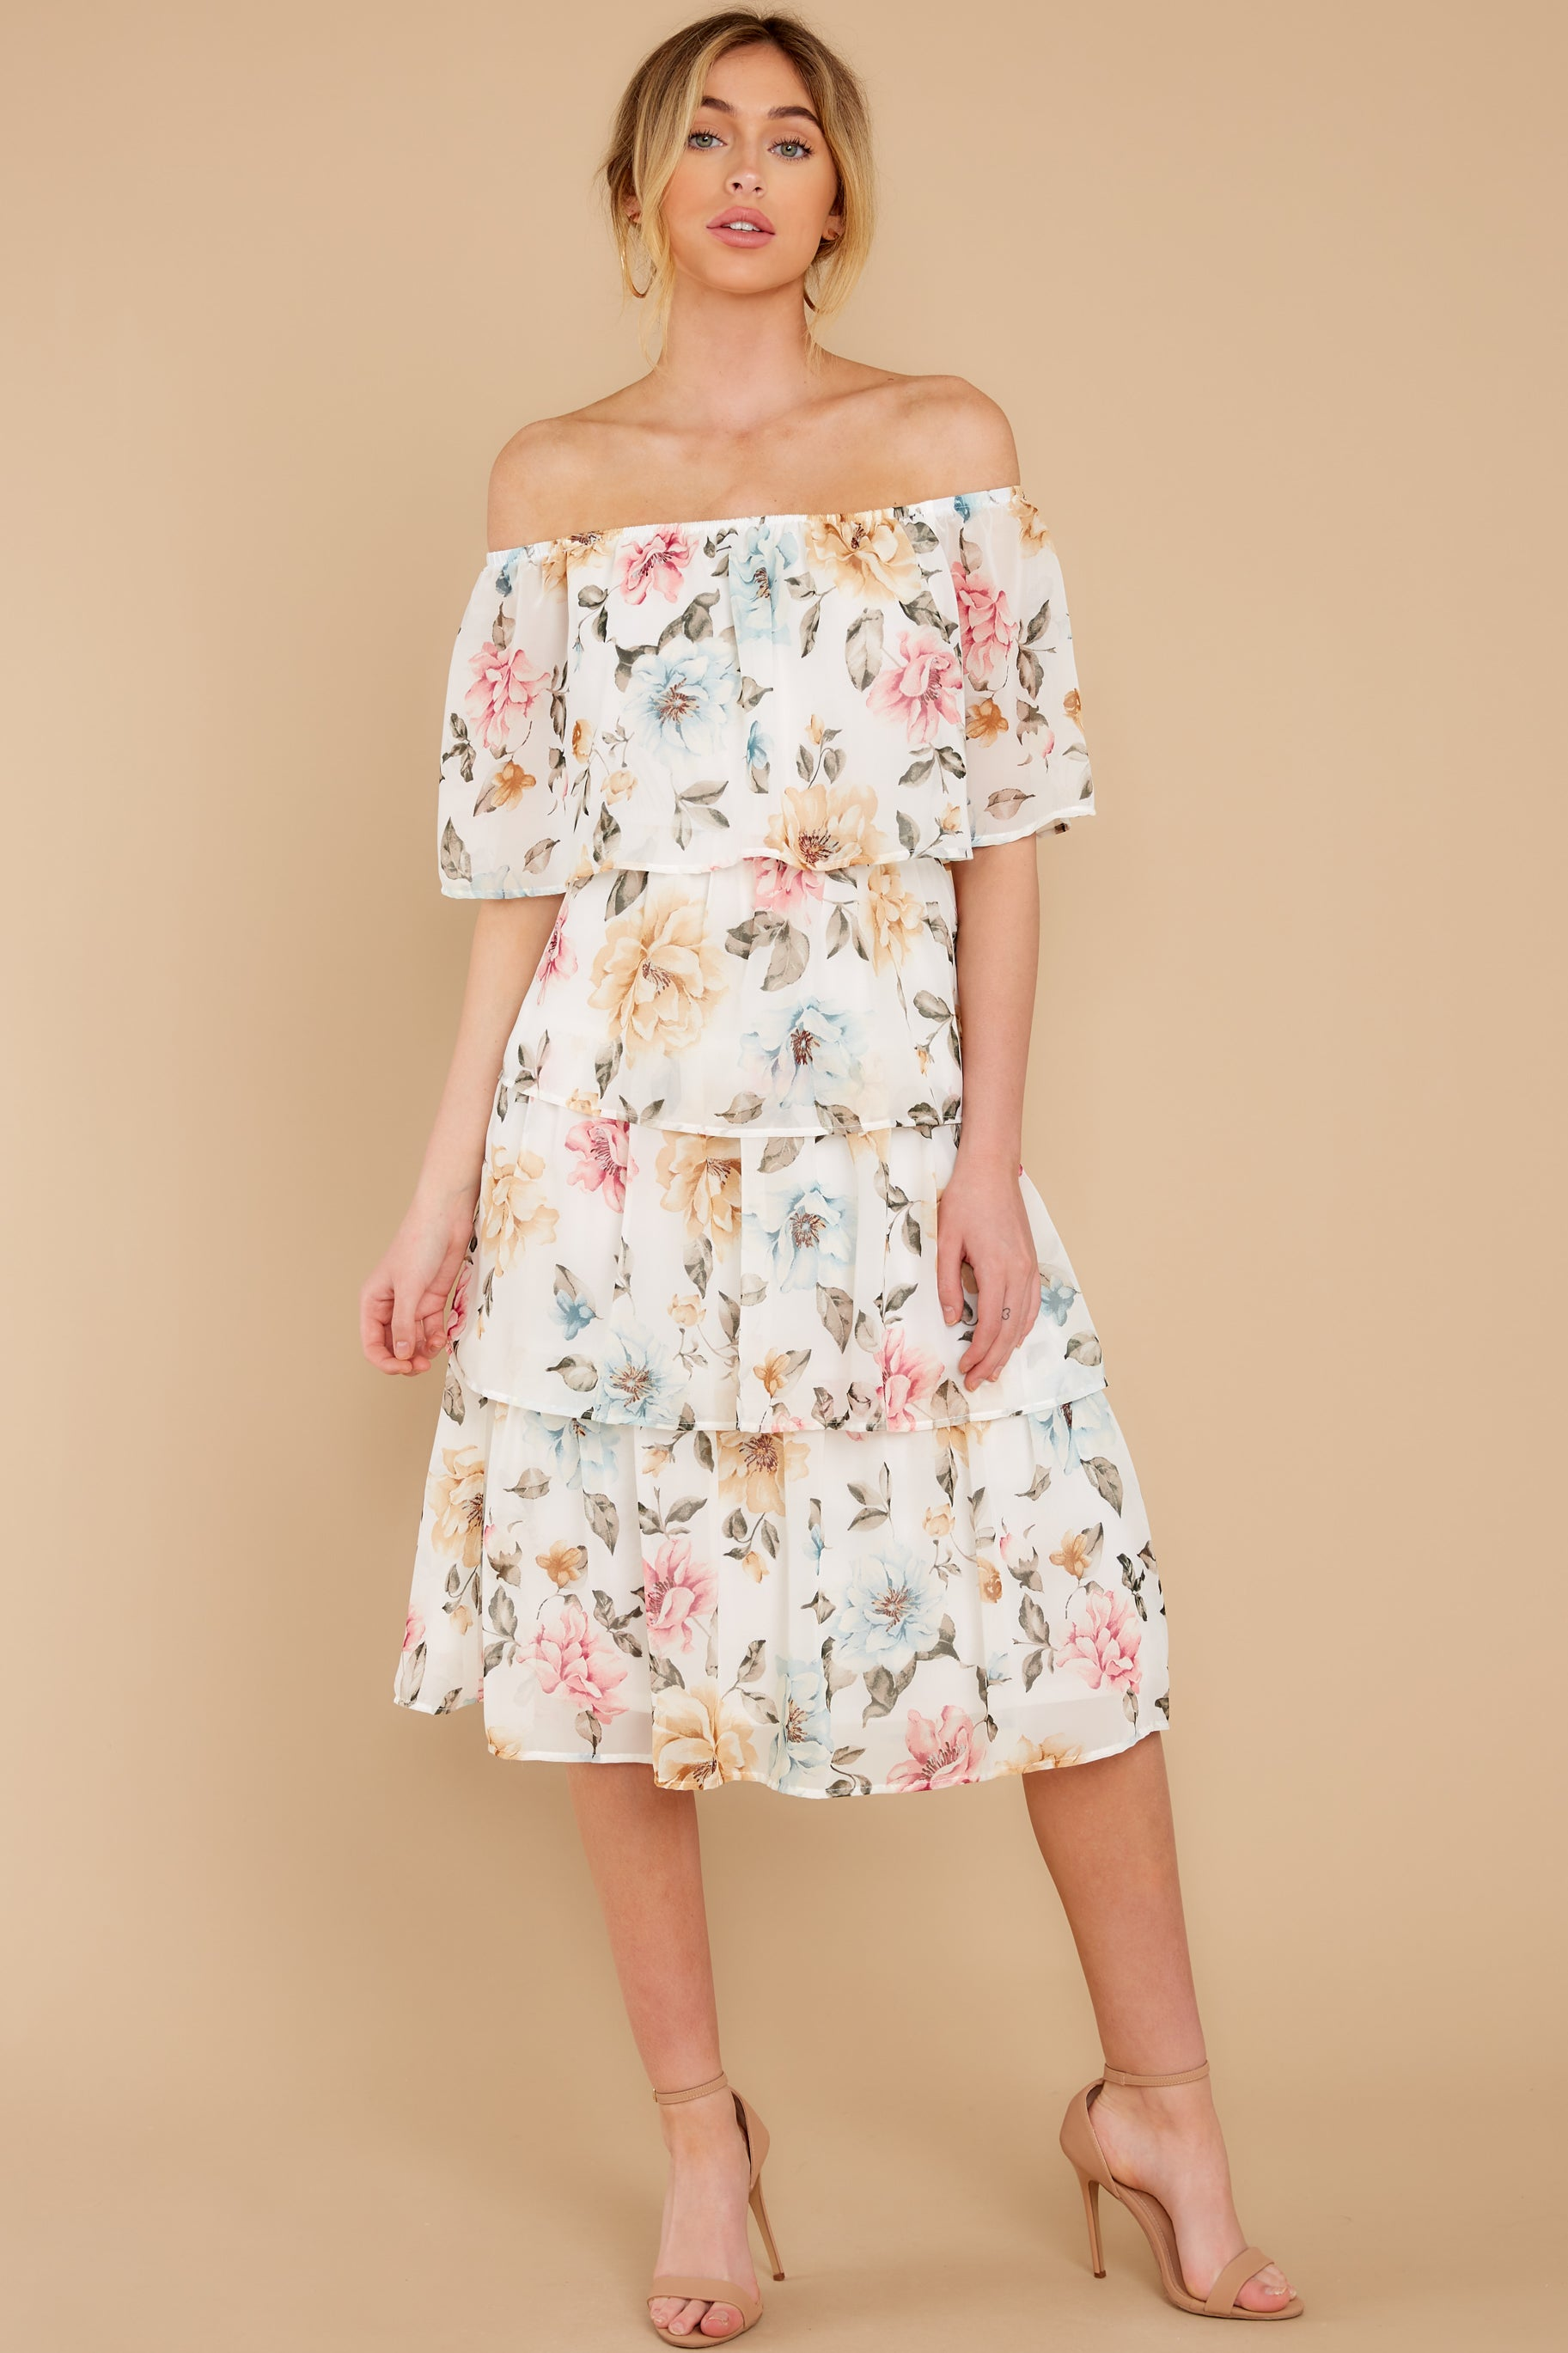 5 In My Dreams Ivory Floral Print Midi Dress at reddress.com